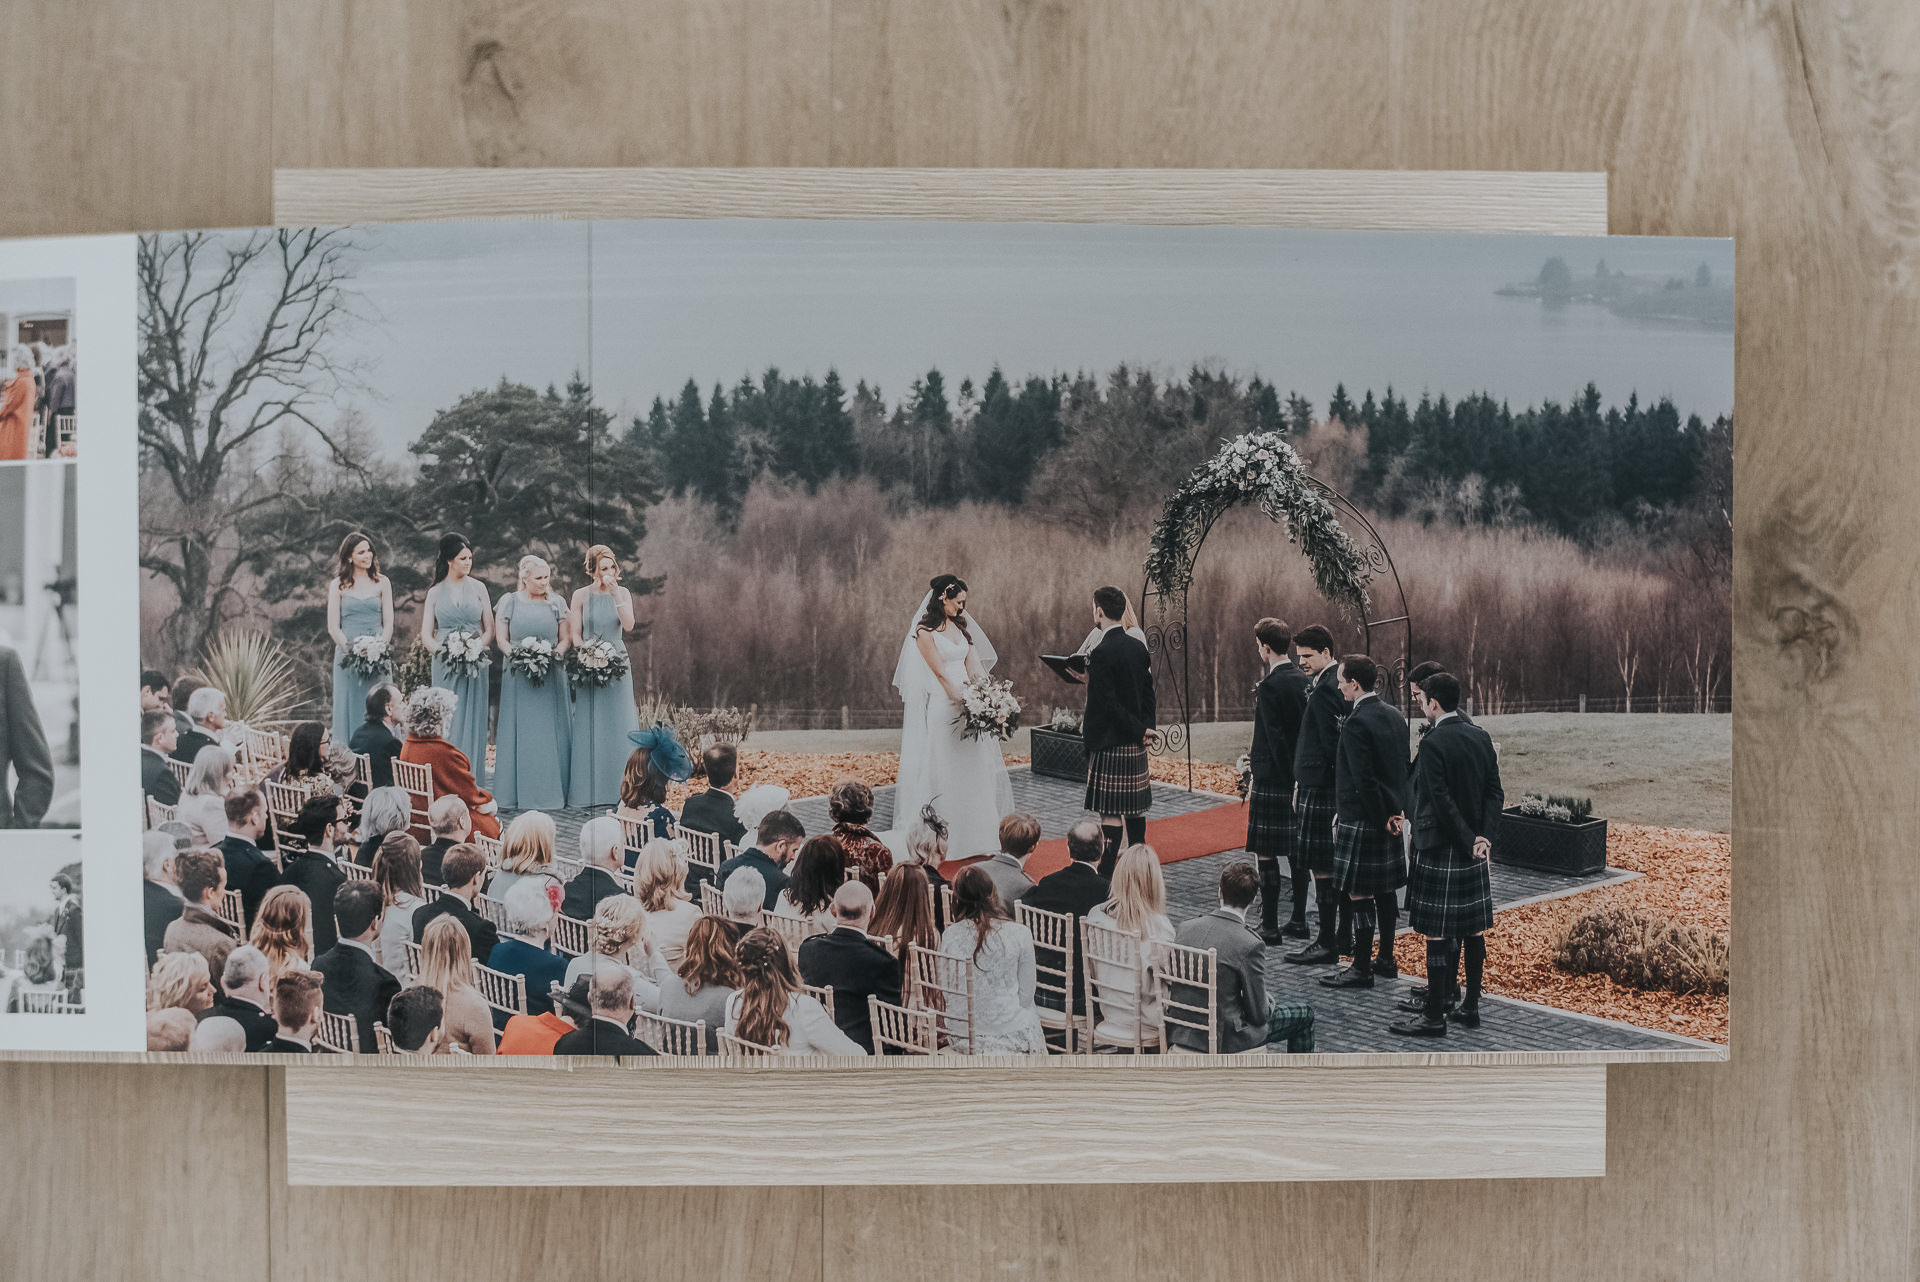 Boturich Castle wedding photos, Boturich Castle wedding photographer, wedding photographer Edinburgh, wedding photographer Scotland, wedding photographer Glasgow, Karol Makula photography, wedding album Boturich Castle